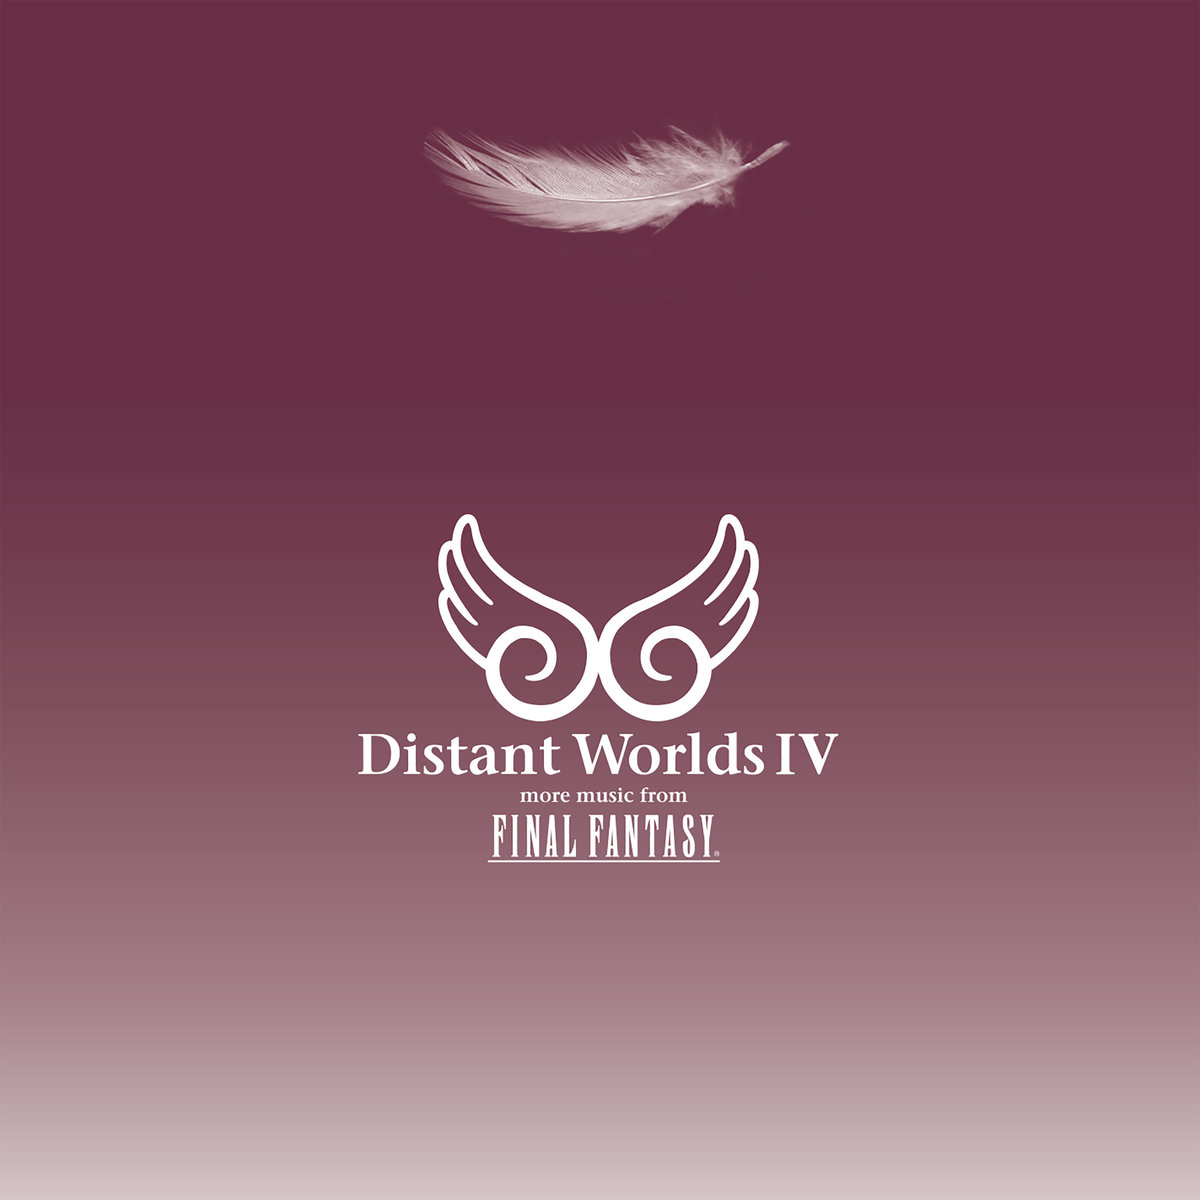 Distant Worlds IV more music from Final Fantasy.jpg